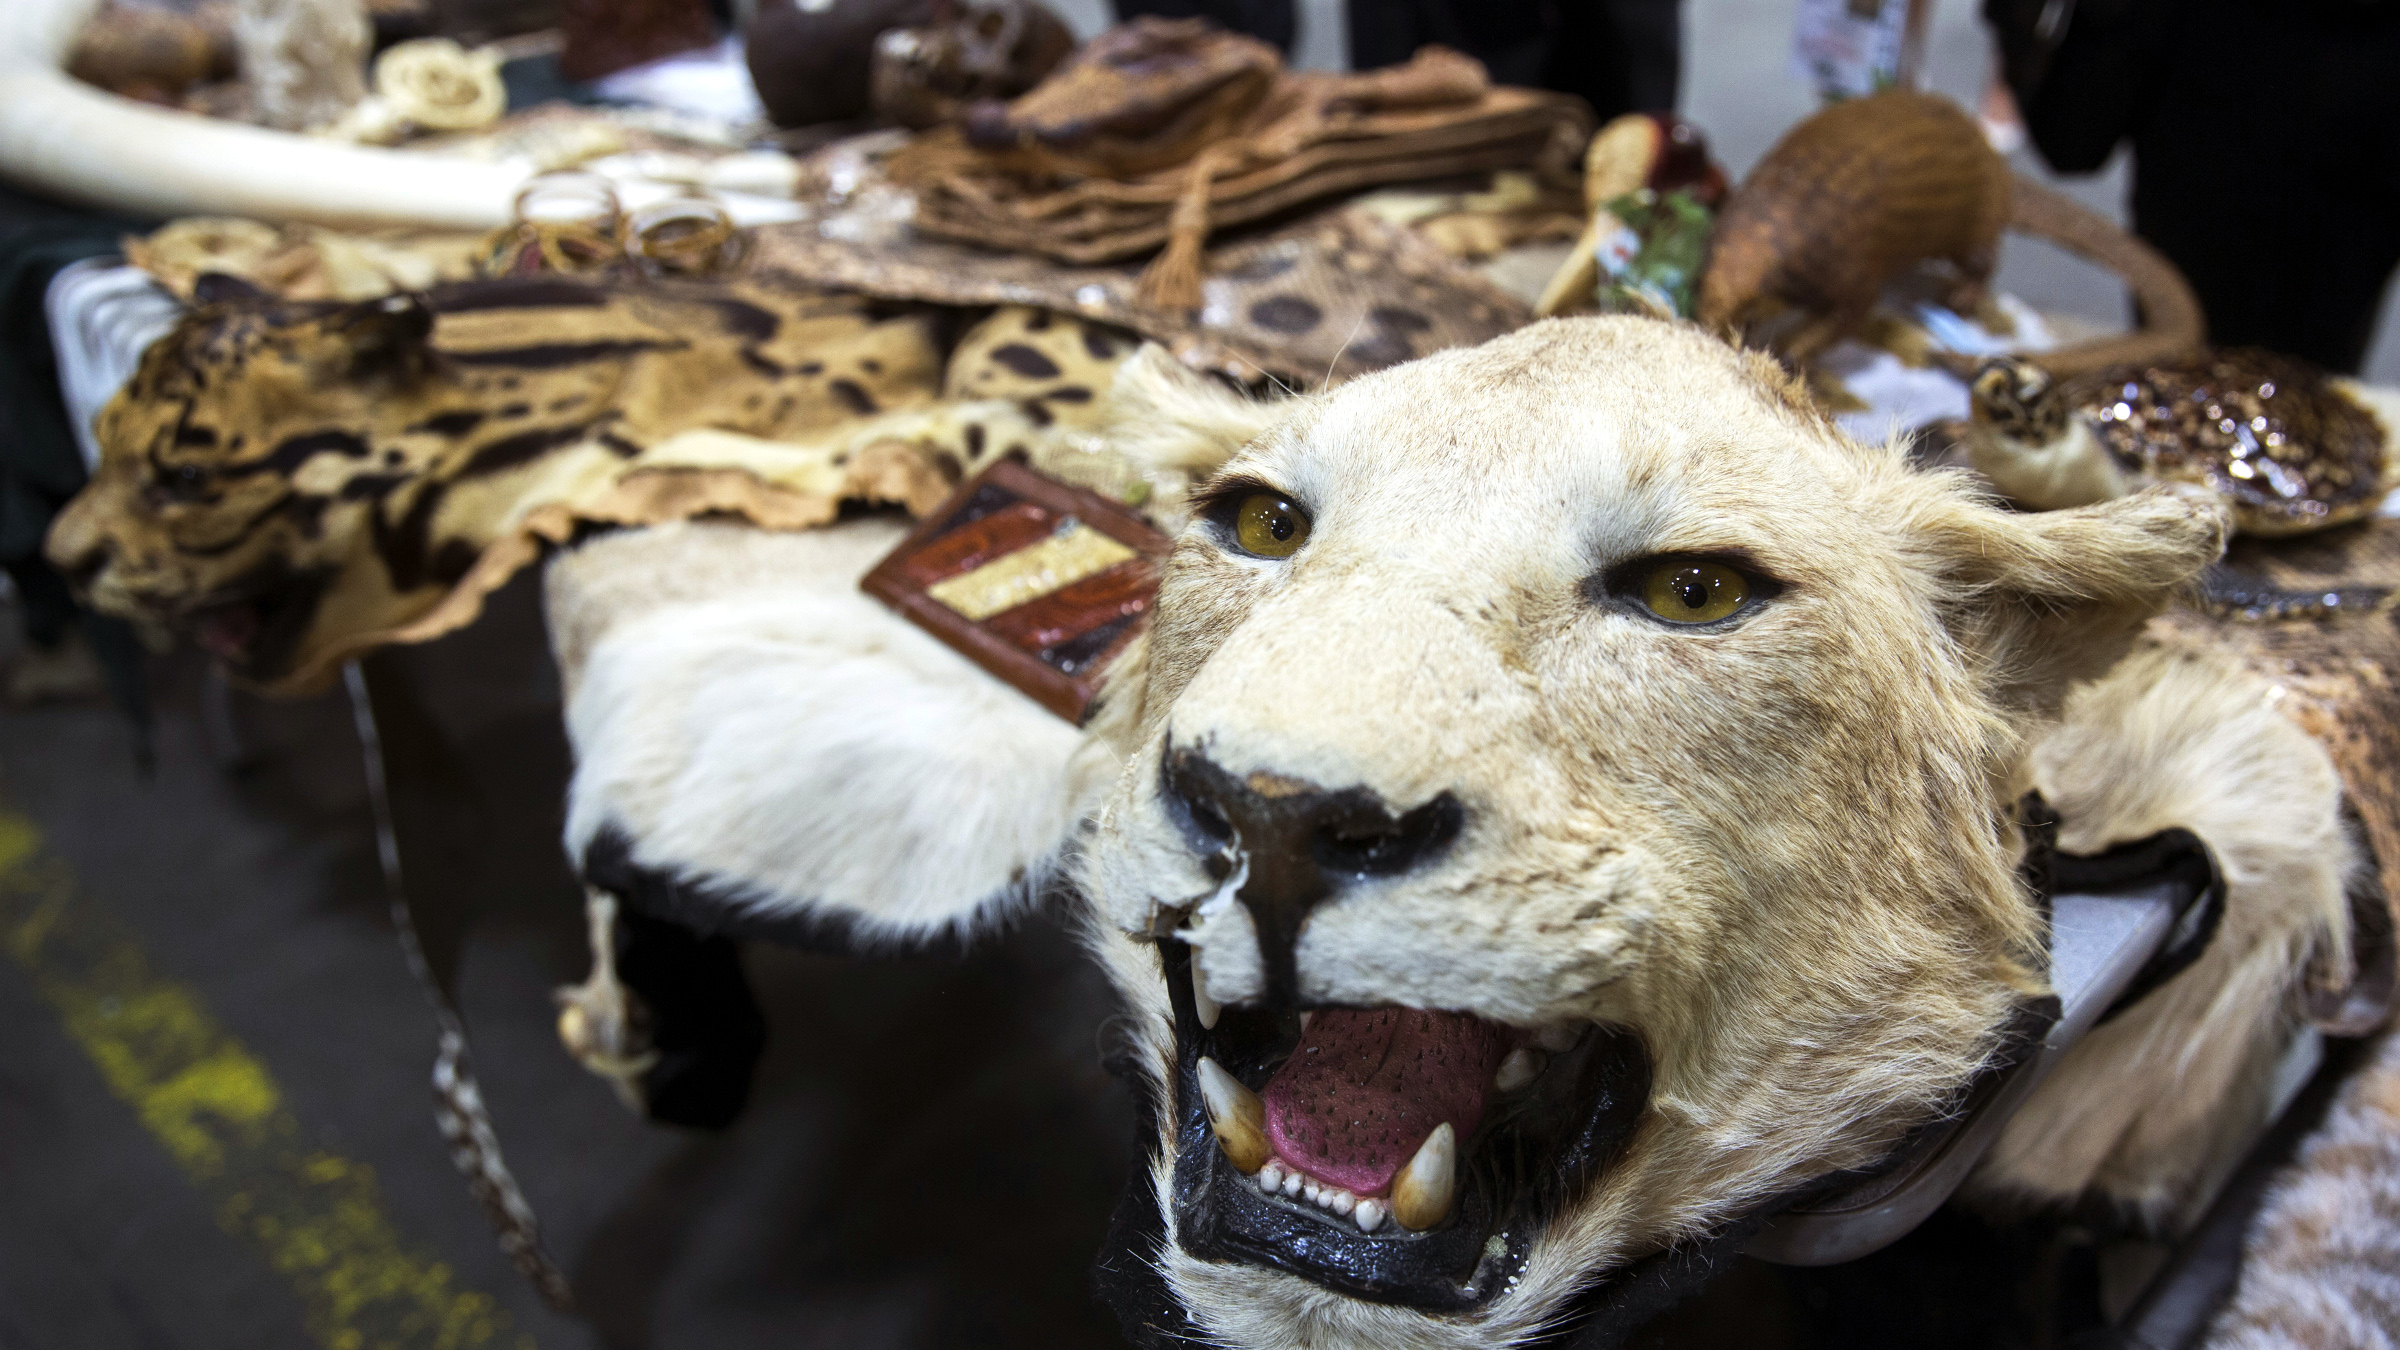 A lion skin is displayed on a table put together by the U.S. Fish and Wildlife Service to show examples of confiscated animal by-products during a tour of a bonded warehouse at John F. Kennedy International Airport in New York June 16, 2014.